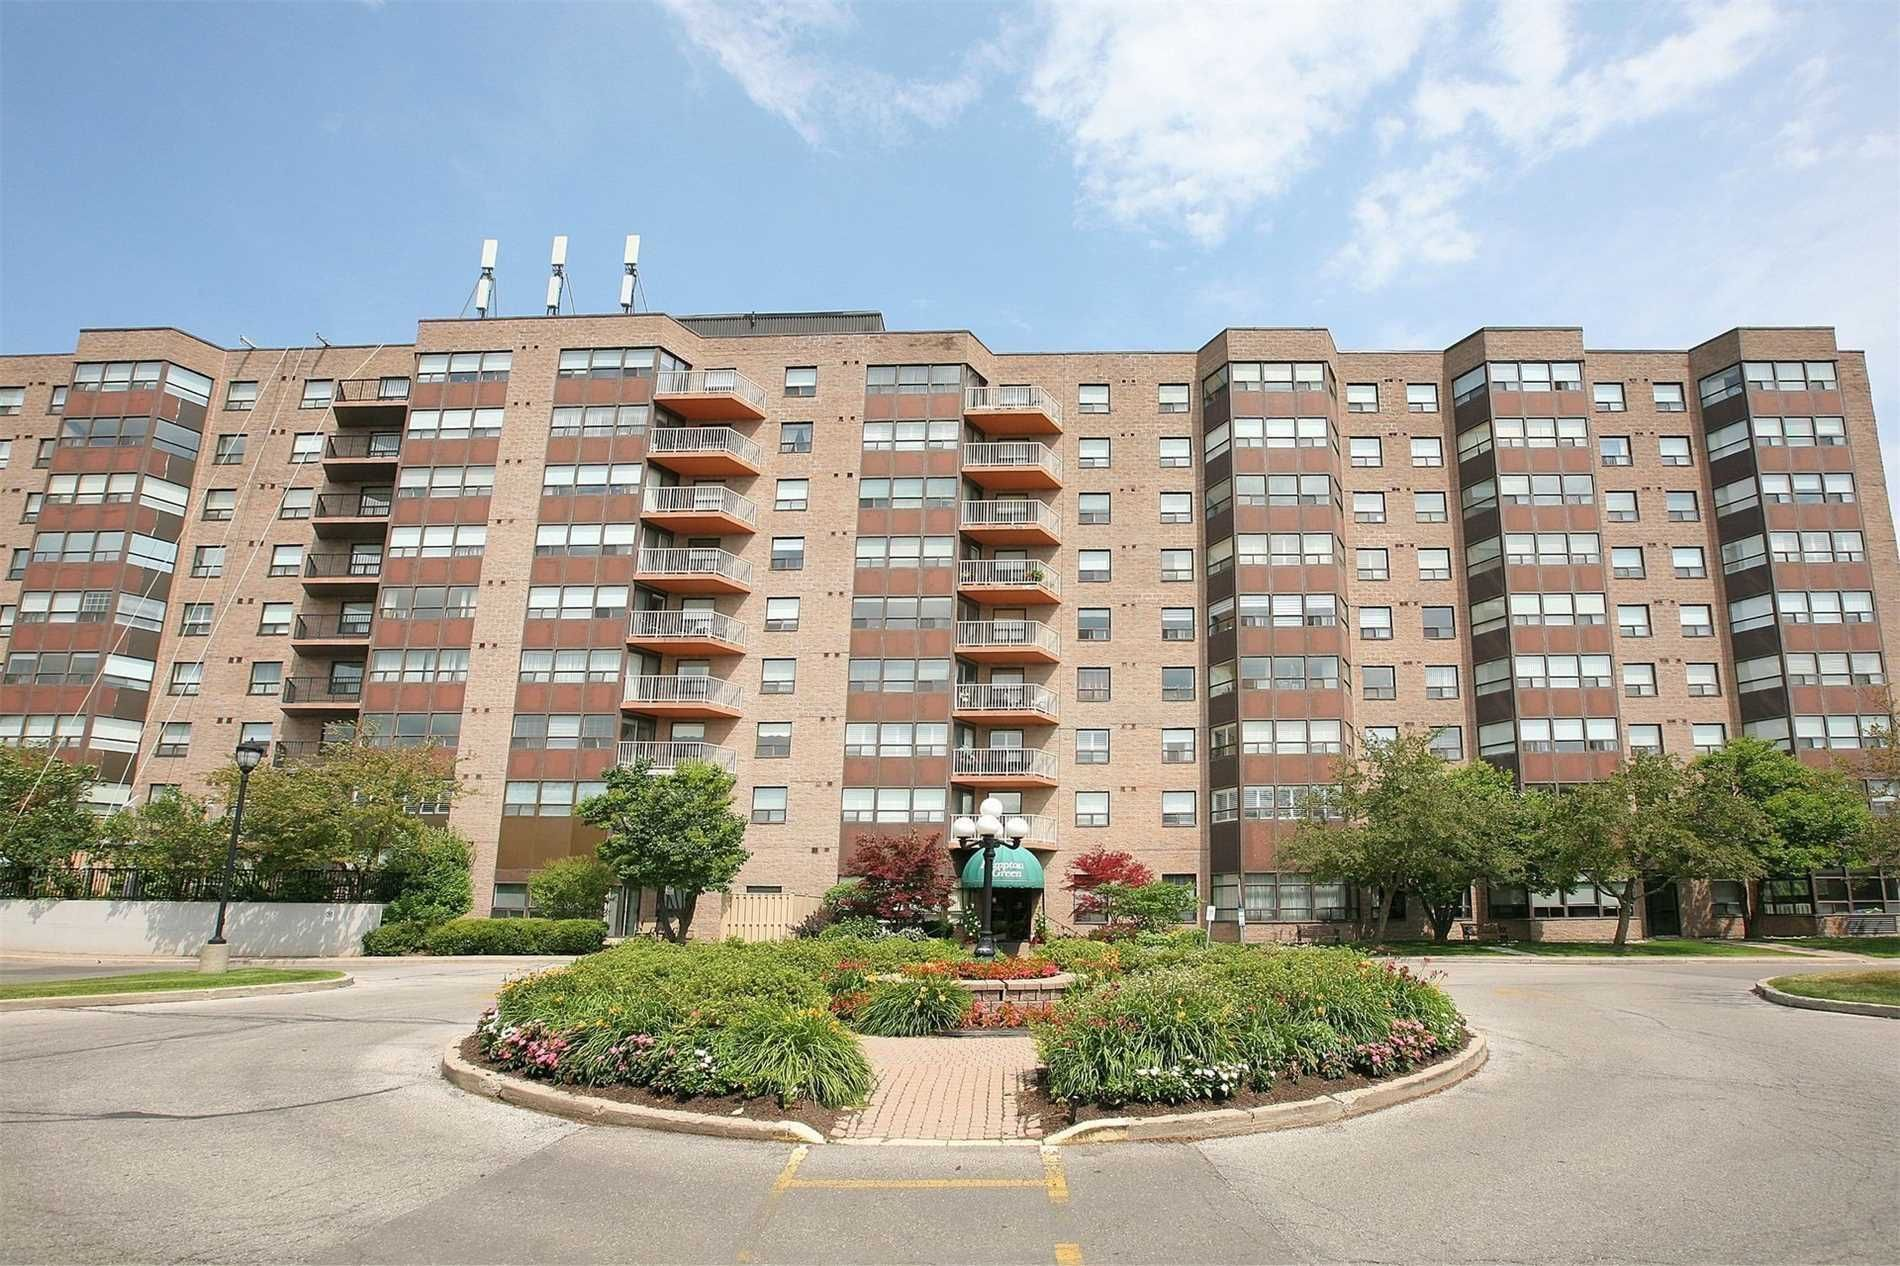 Main Photo: 401 2 Raymerville Drive in Markham: Raymerville Condo for sale : MLS®# N5206252